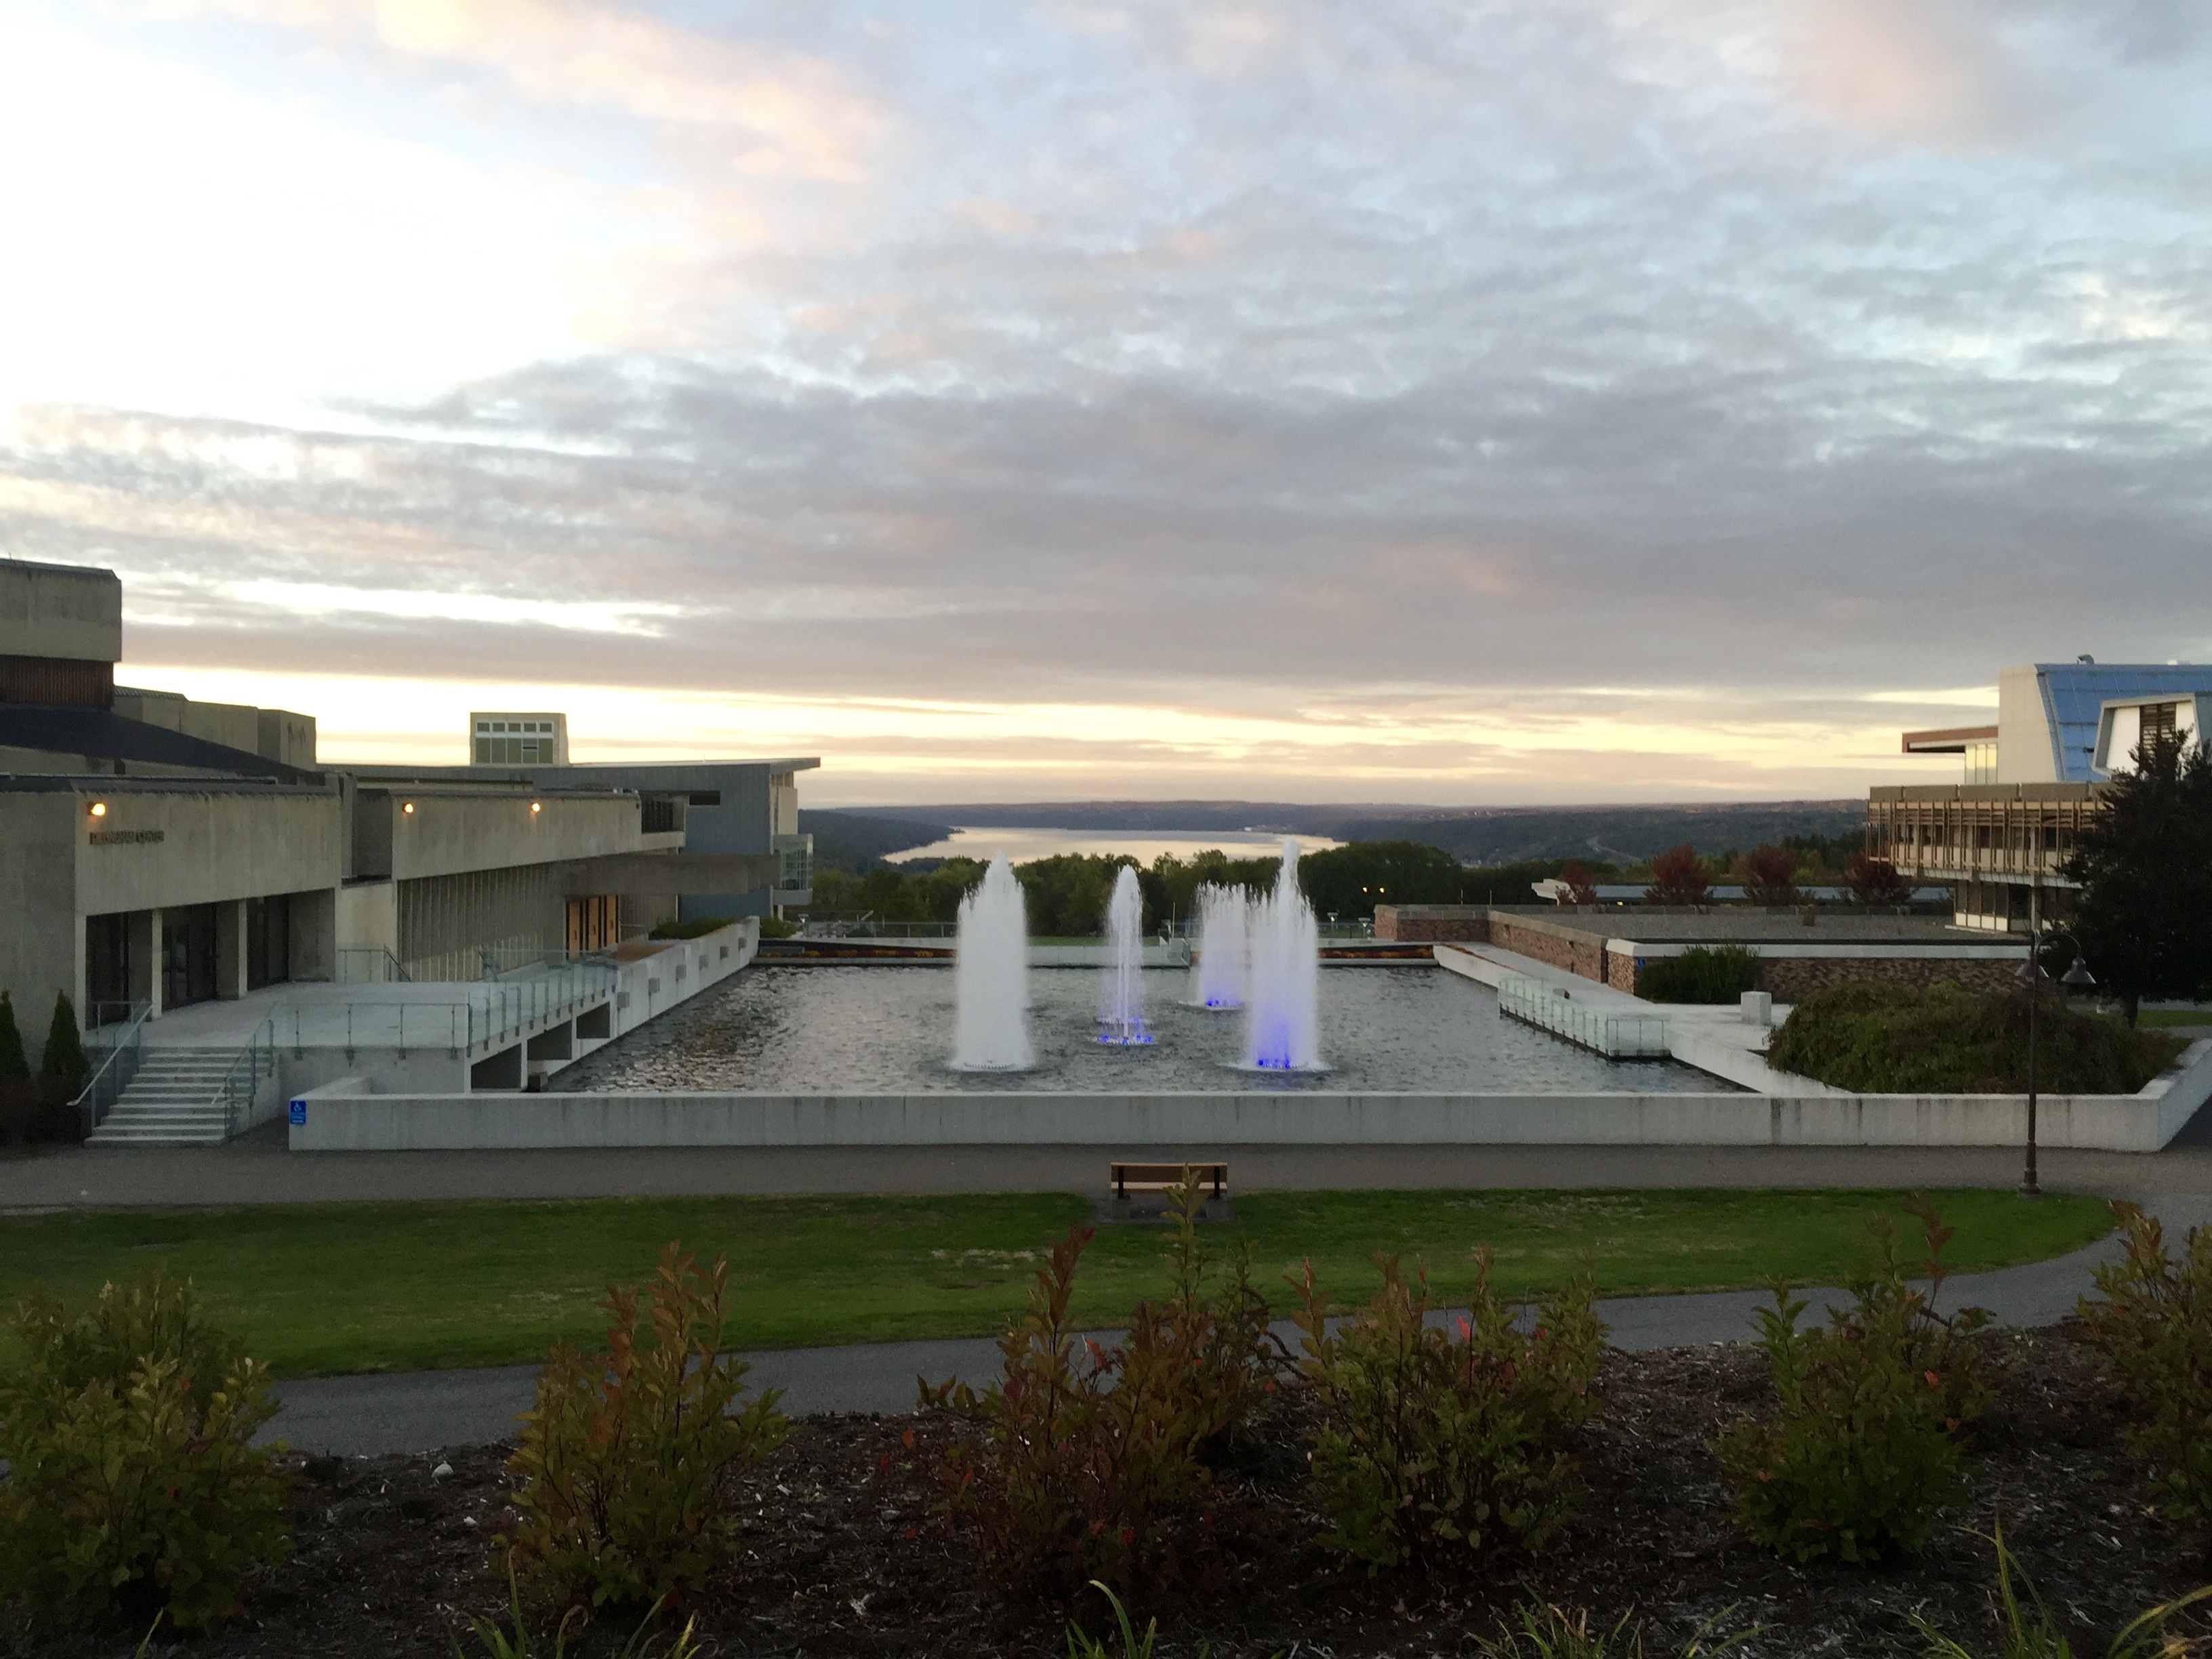 Dillingham Fountain at Ithaca College, with Cayuga Lake in the background. Photo credit: Veer Badani